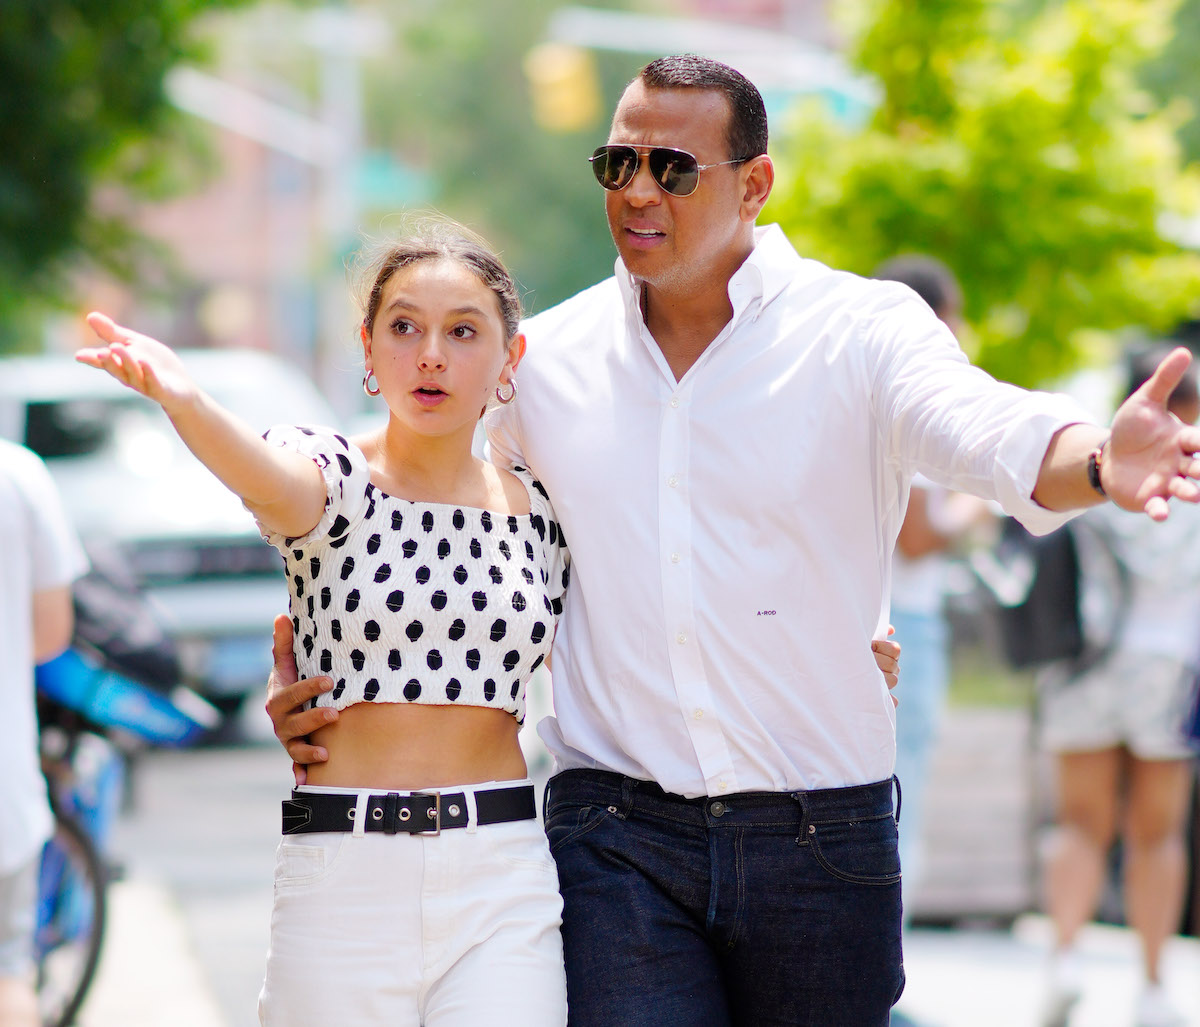 Alex Rodriguez is seen with his daughter on June 21, 2021 in New York City.